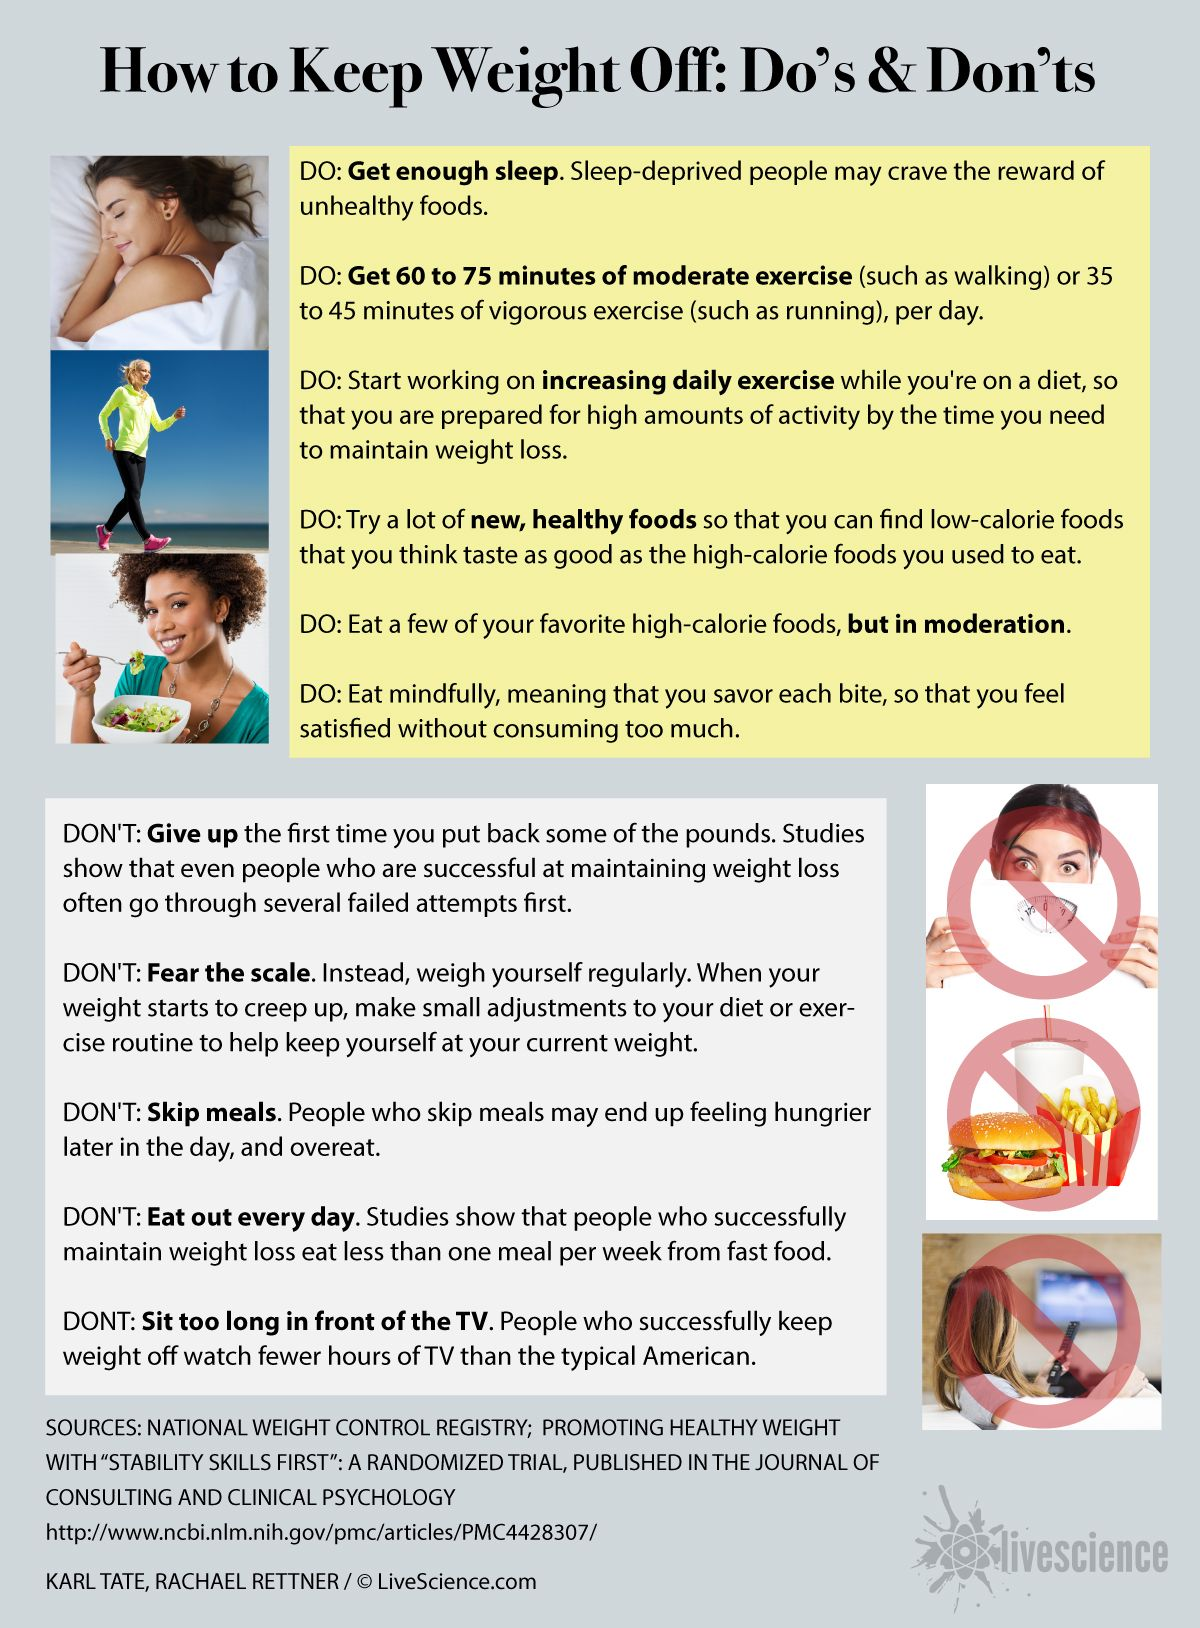 how to keep weight off after dieting